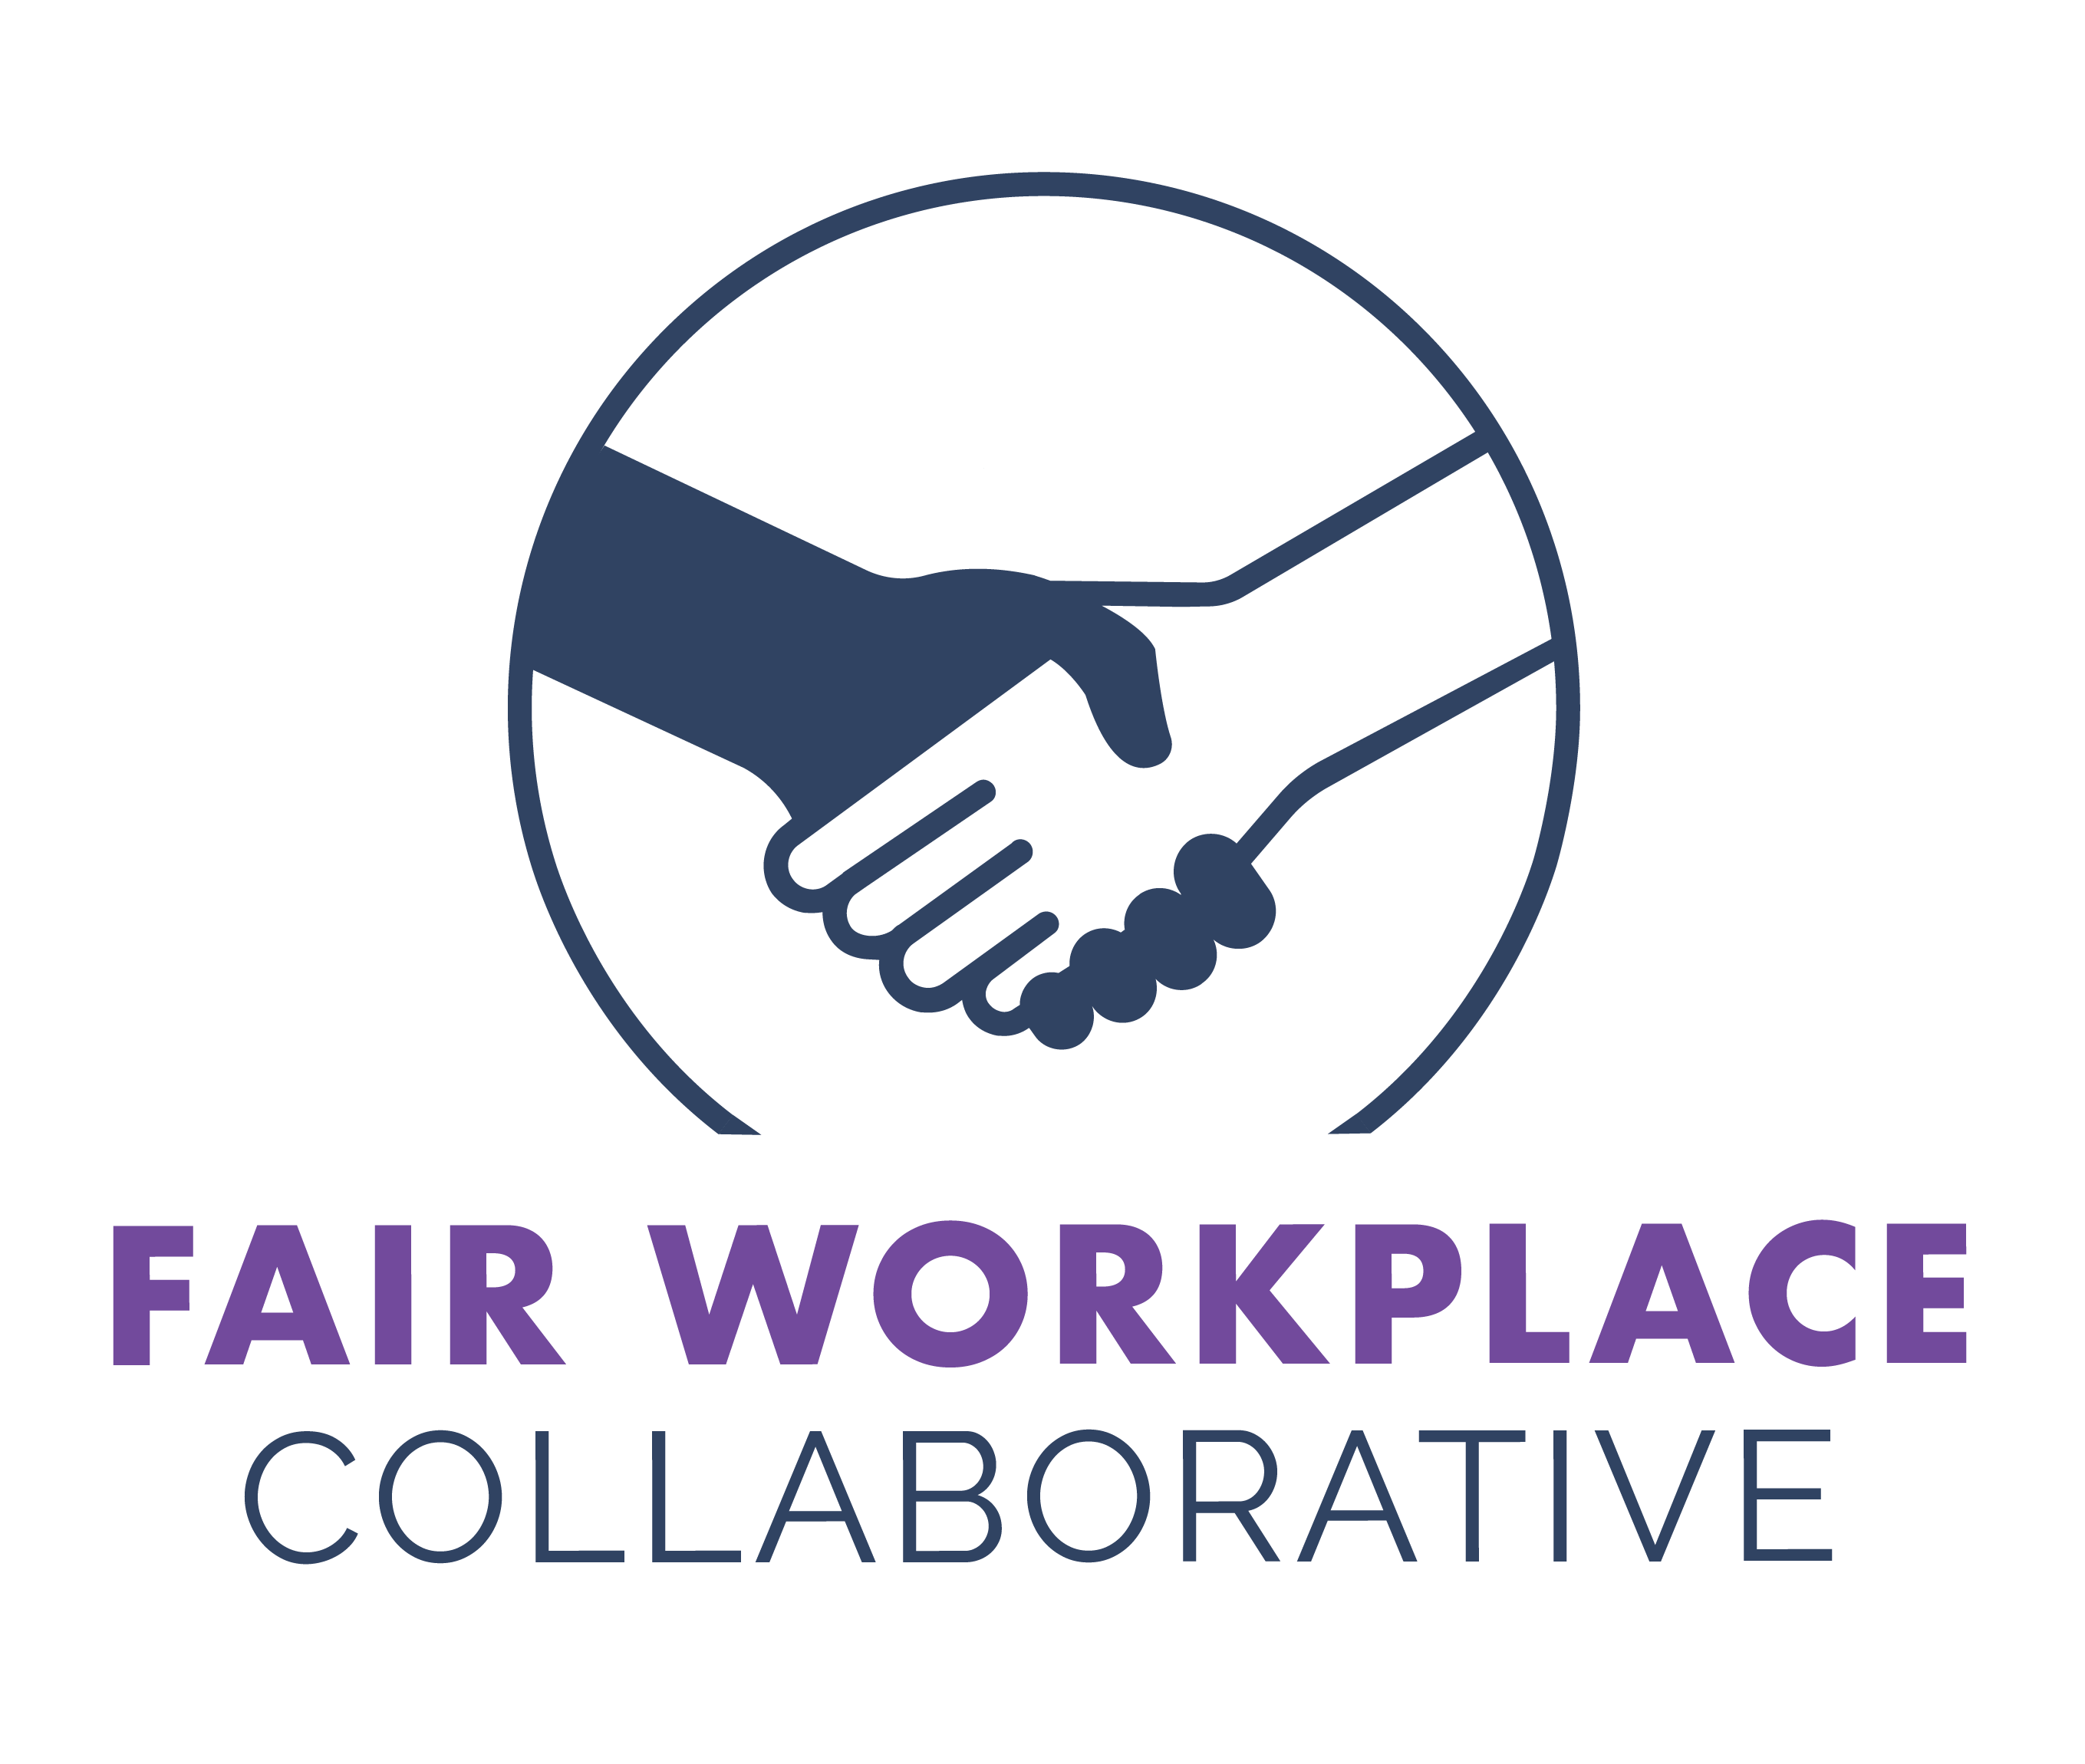 Fair Workplace Collaborative